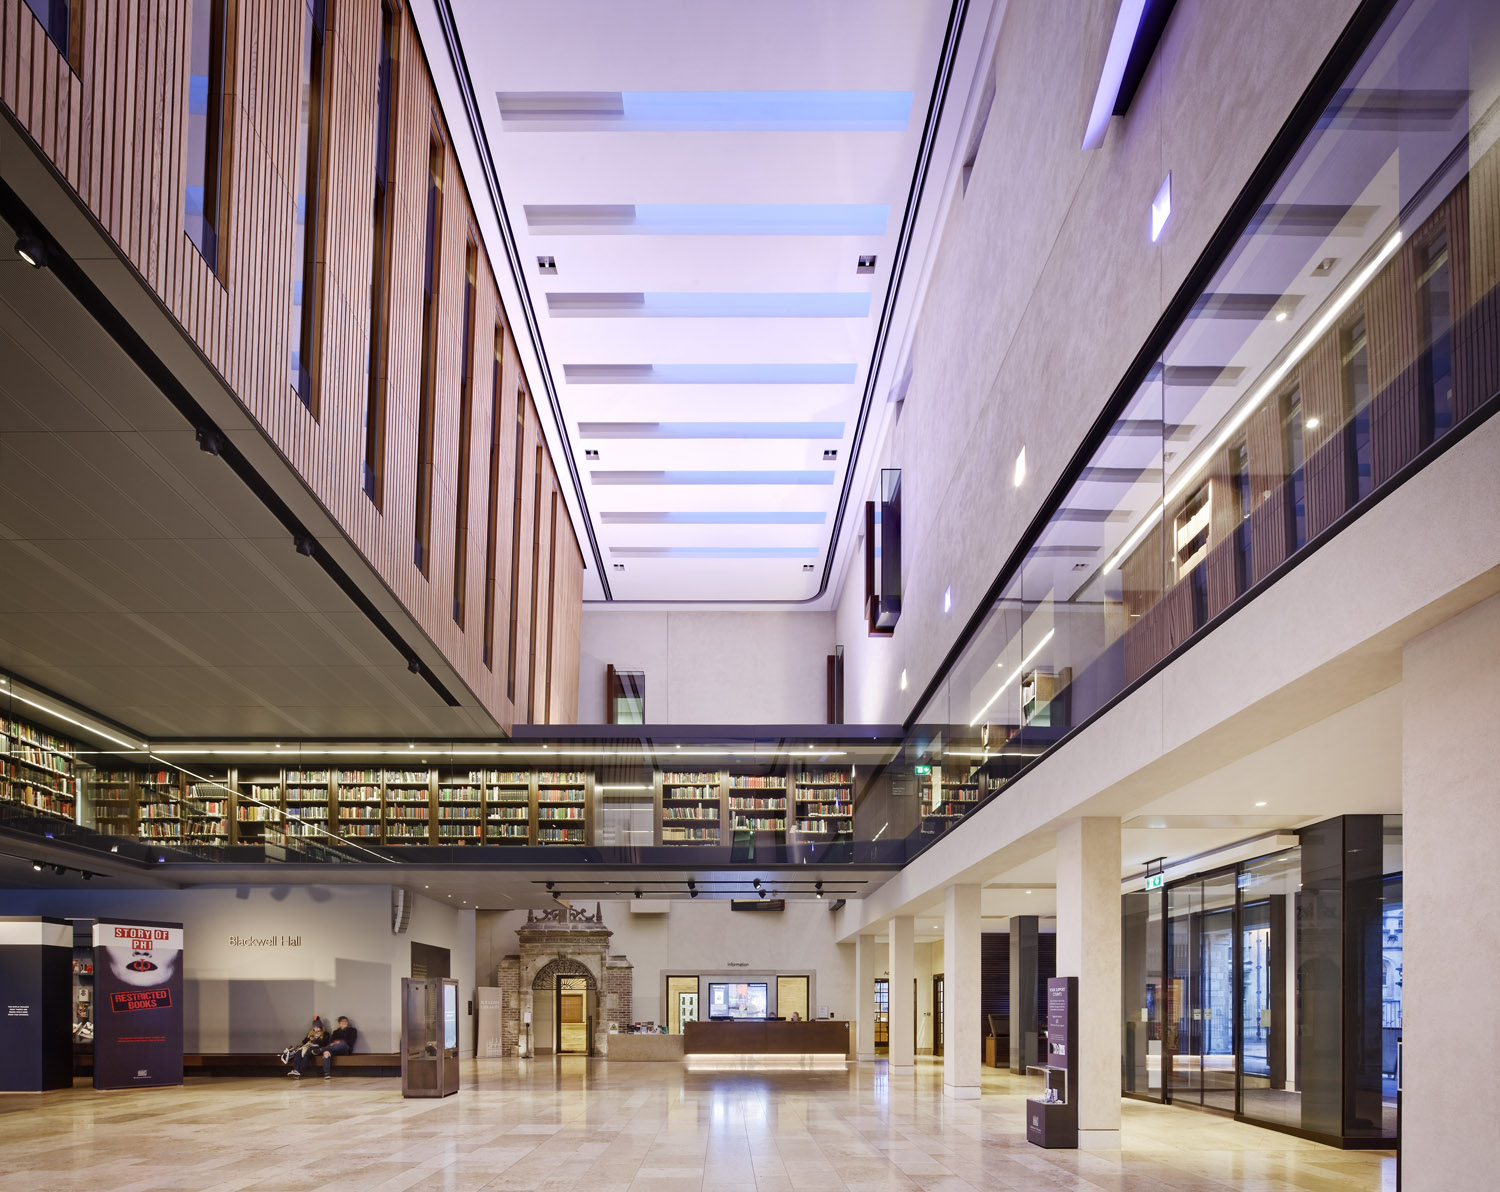 Blackwell Hall, Weston Library, Bodleian Libraries, University of Oxford, Oxford, UK